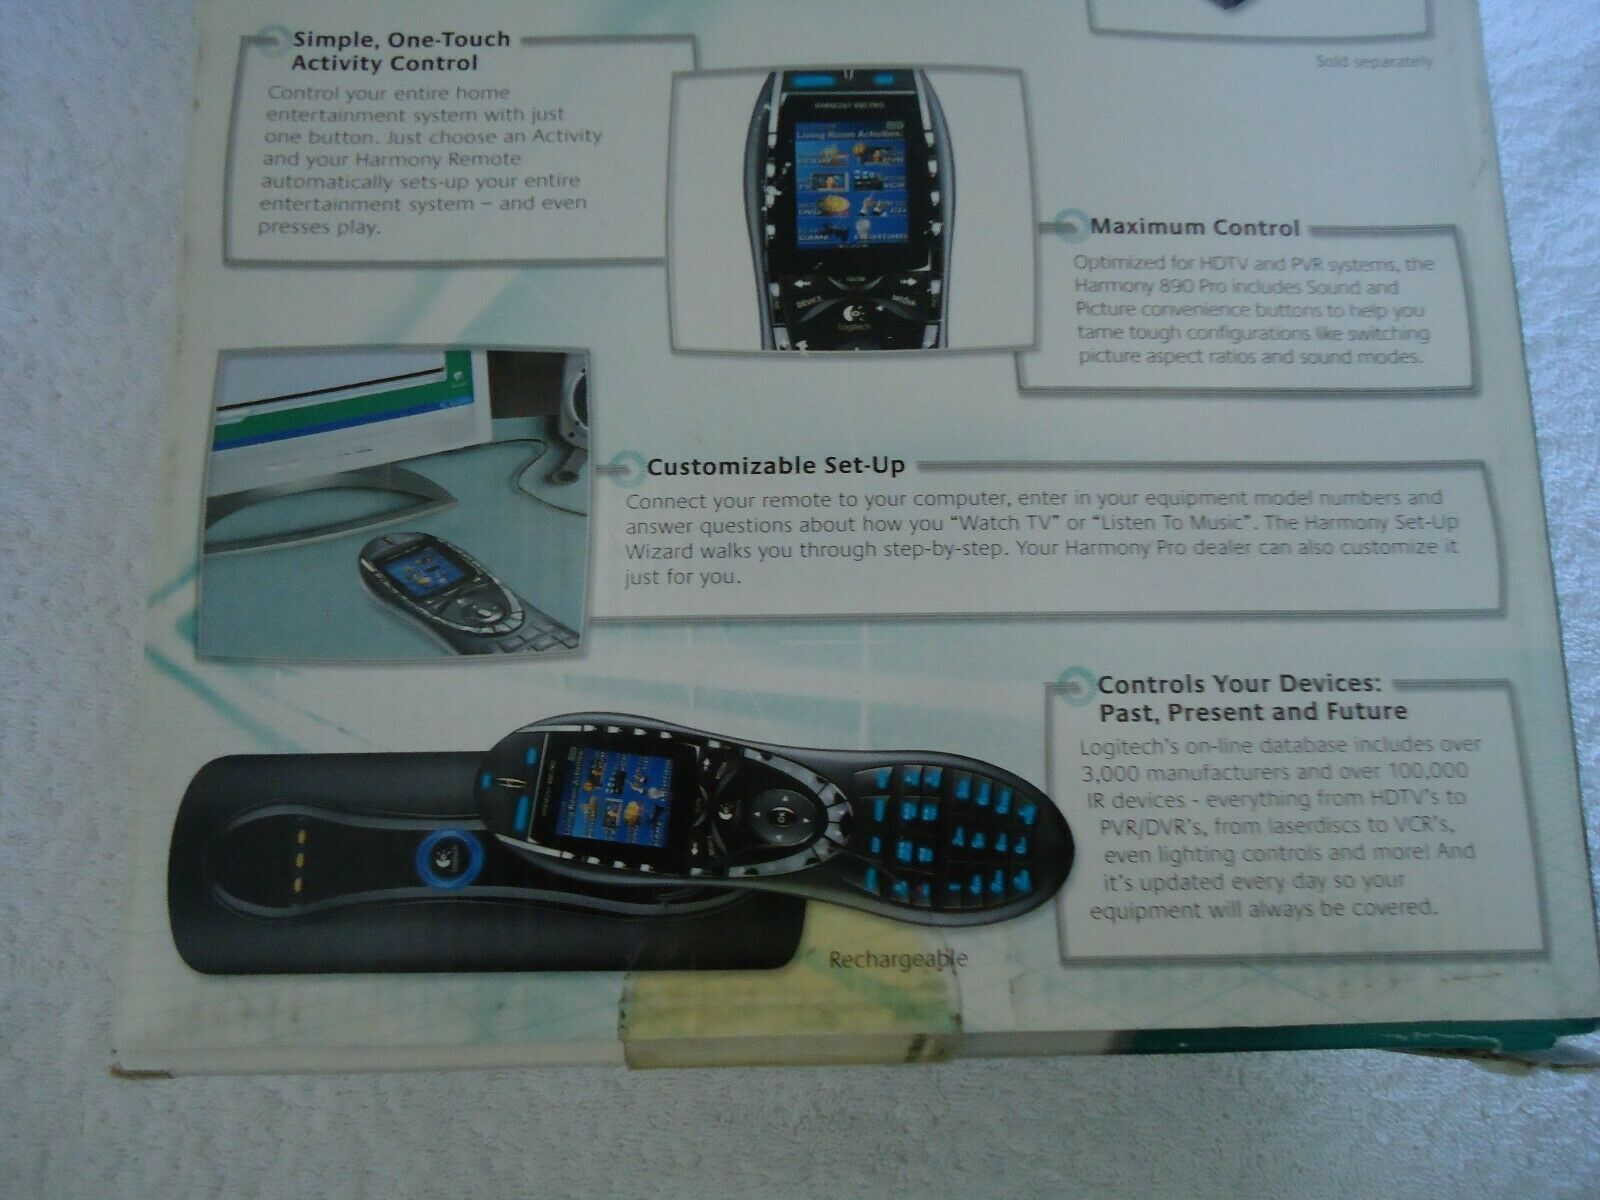 Logitech Harmony 890 PRO LCD Universal Remote Control Very Good Pre-Owned Cond.